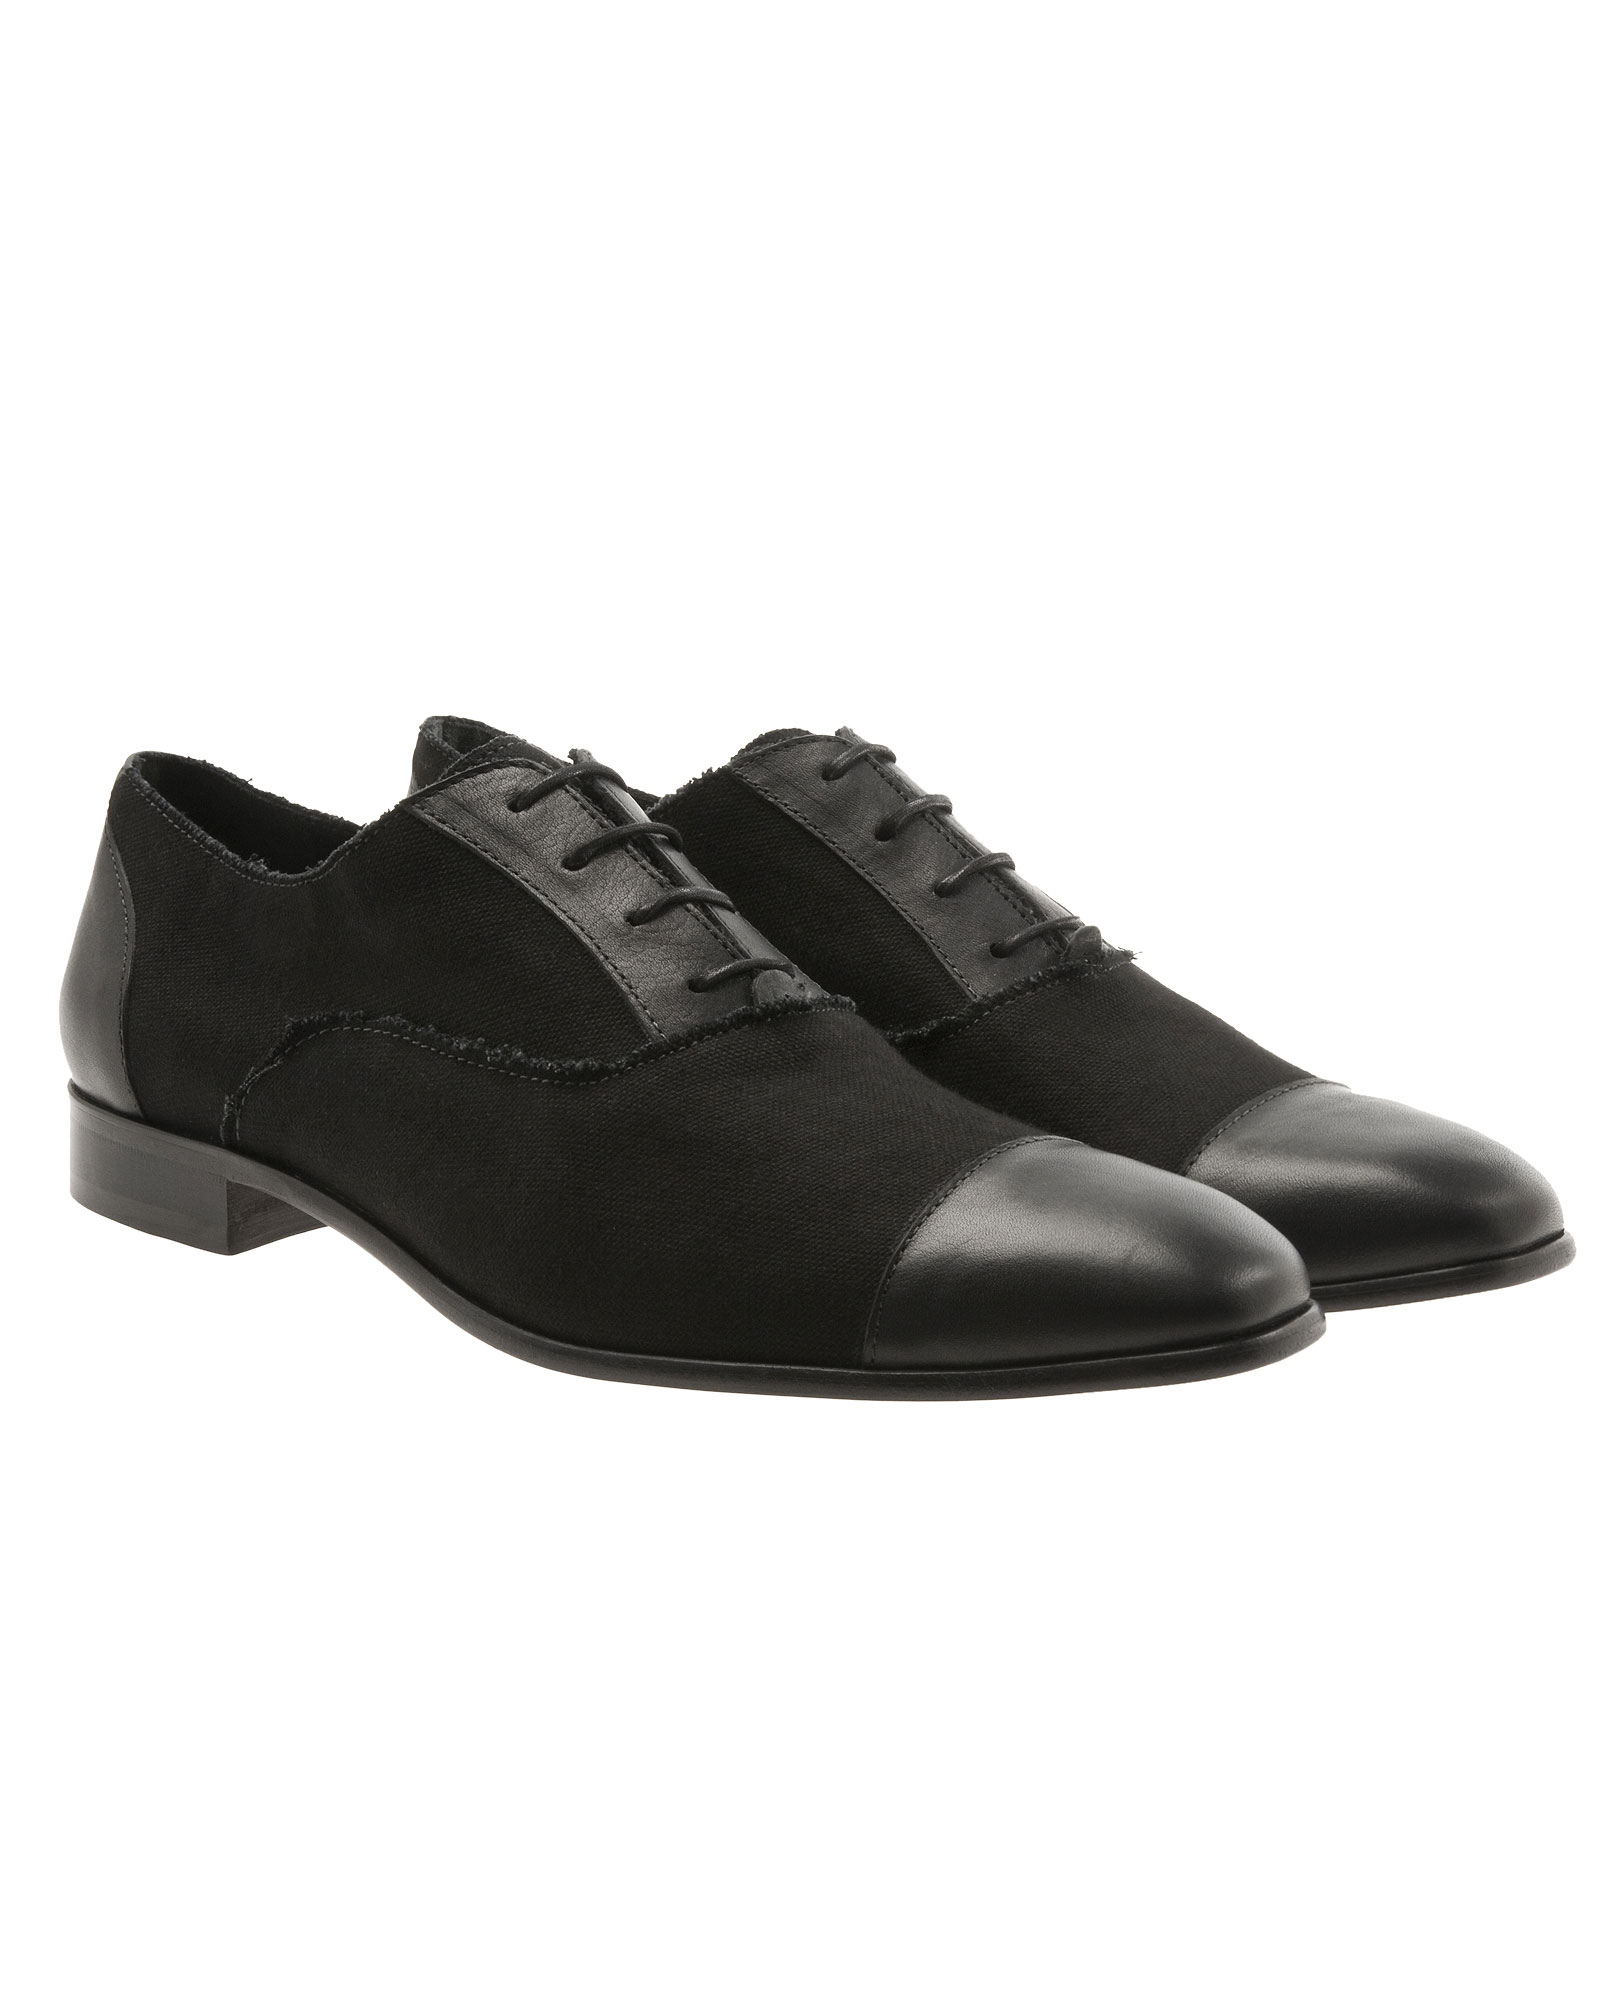 lanvin canvas and leather oxford shoes in black for lyst